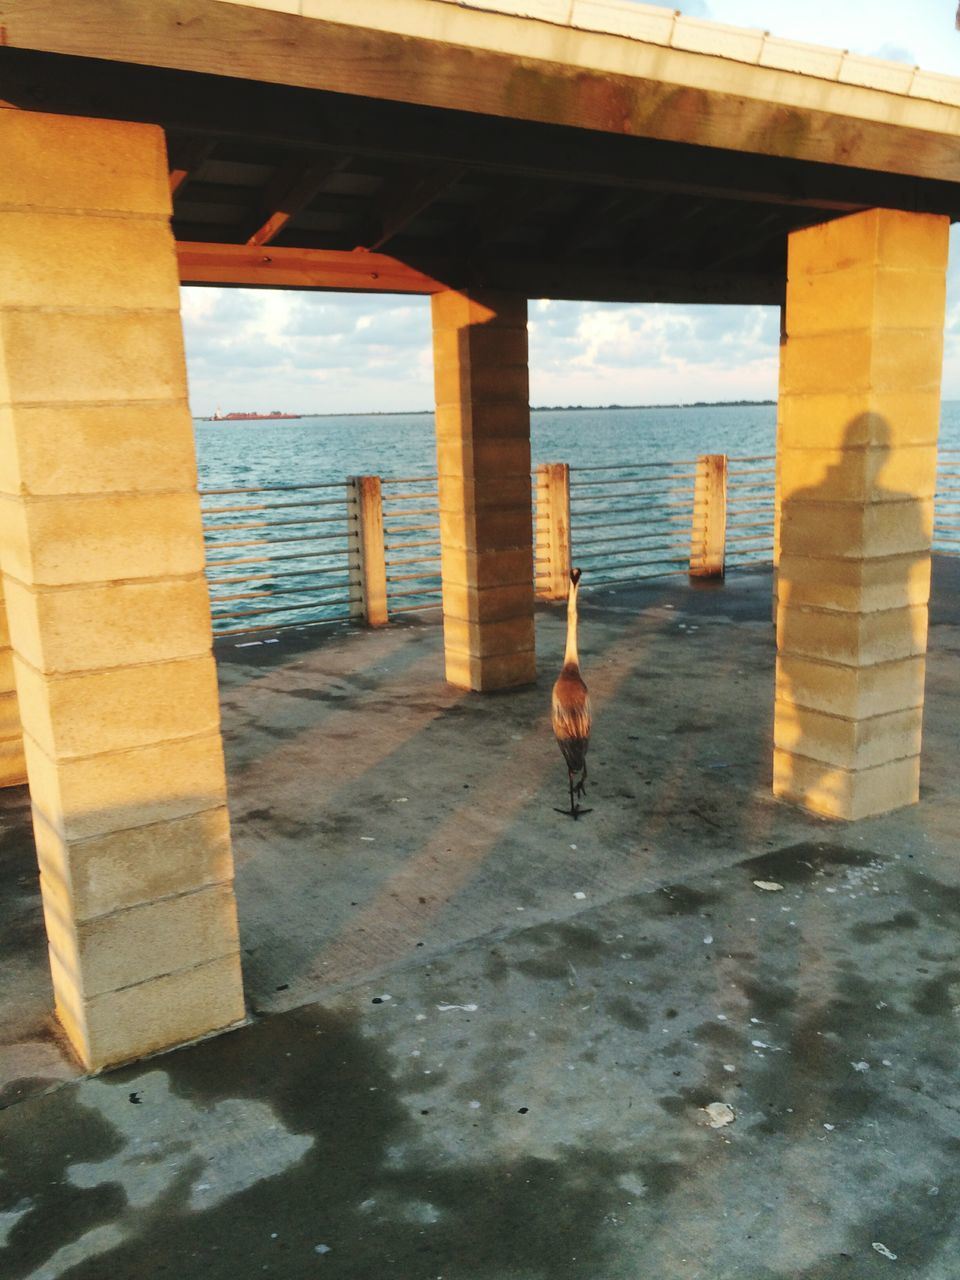 sea, architecture, built structure, water, real people, one person, nature, architectural column, men, day, bridge - man made structure, lifestyles, indoors, sky, horizon over water, underneath, under, one man only, people